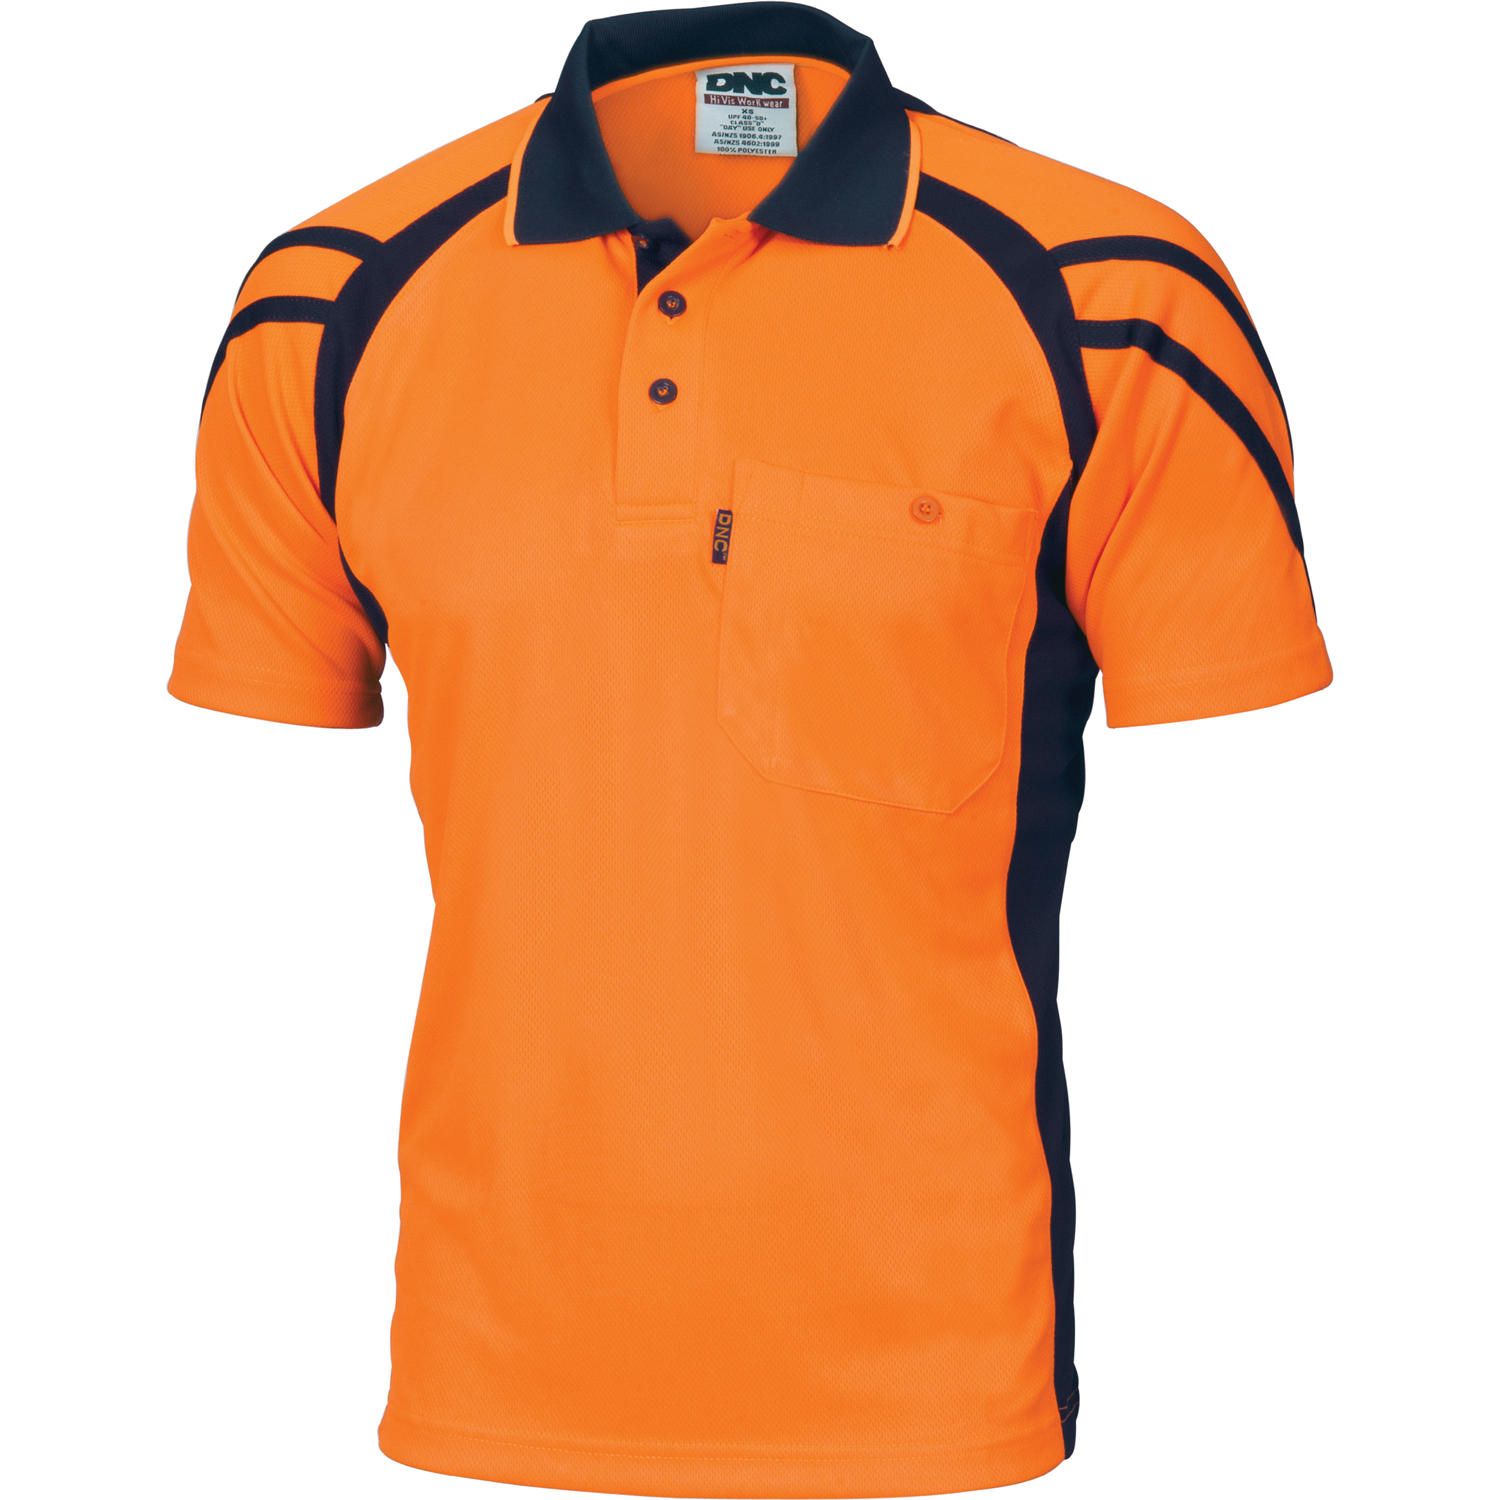 Product display dnc workwear workwear work wear for Work polo shirts with logo